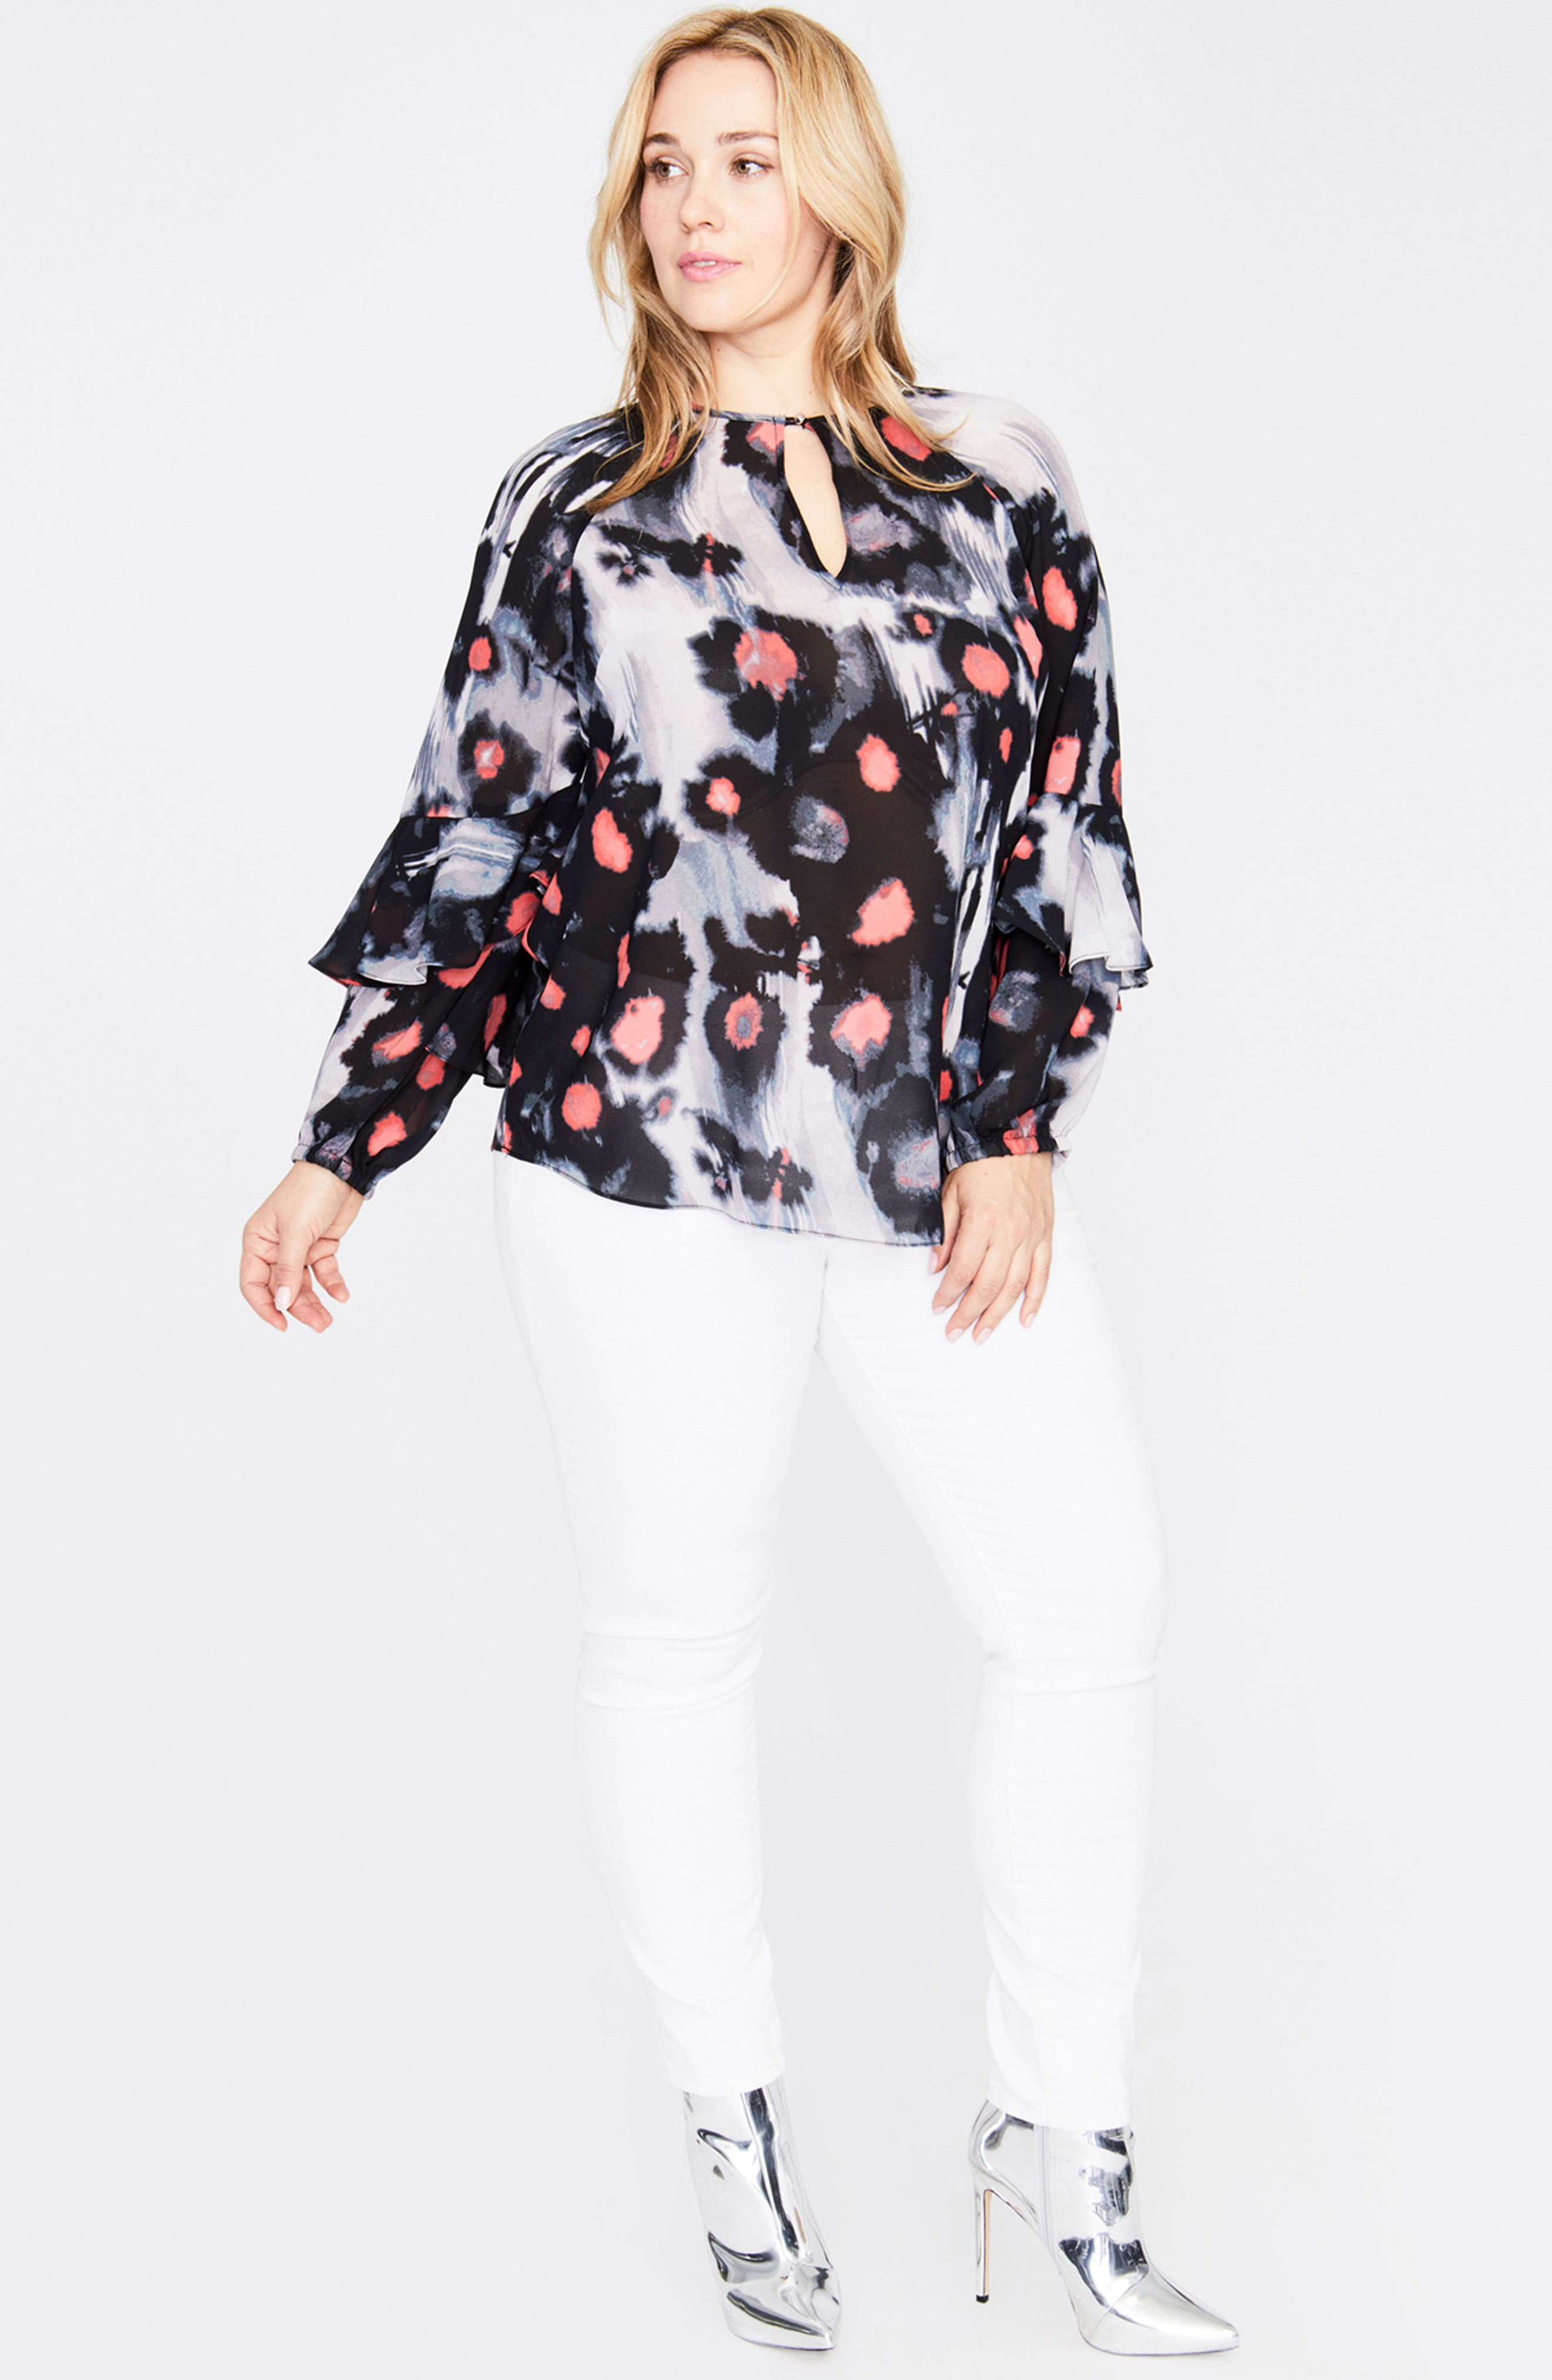 Inkdrop Ruffle Top,                             Alternate thumbnail 3, color,                             INK DROP FLORAL